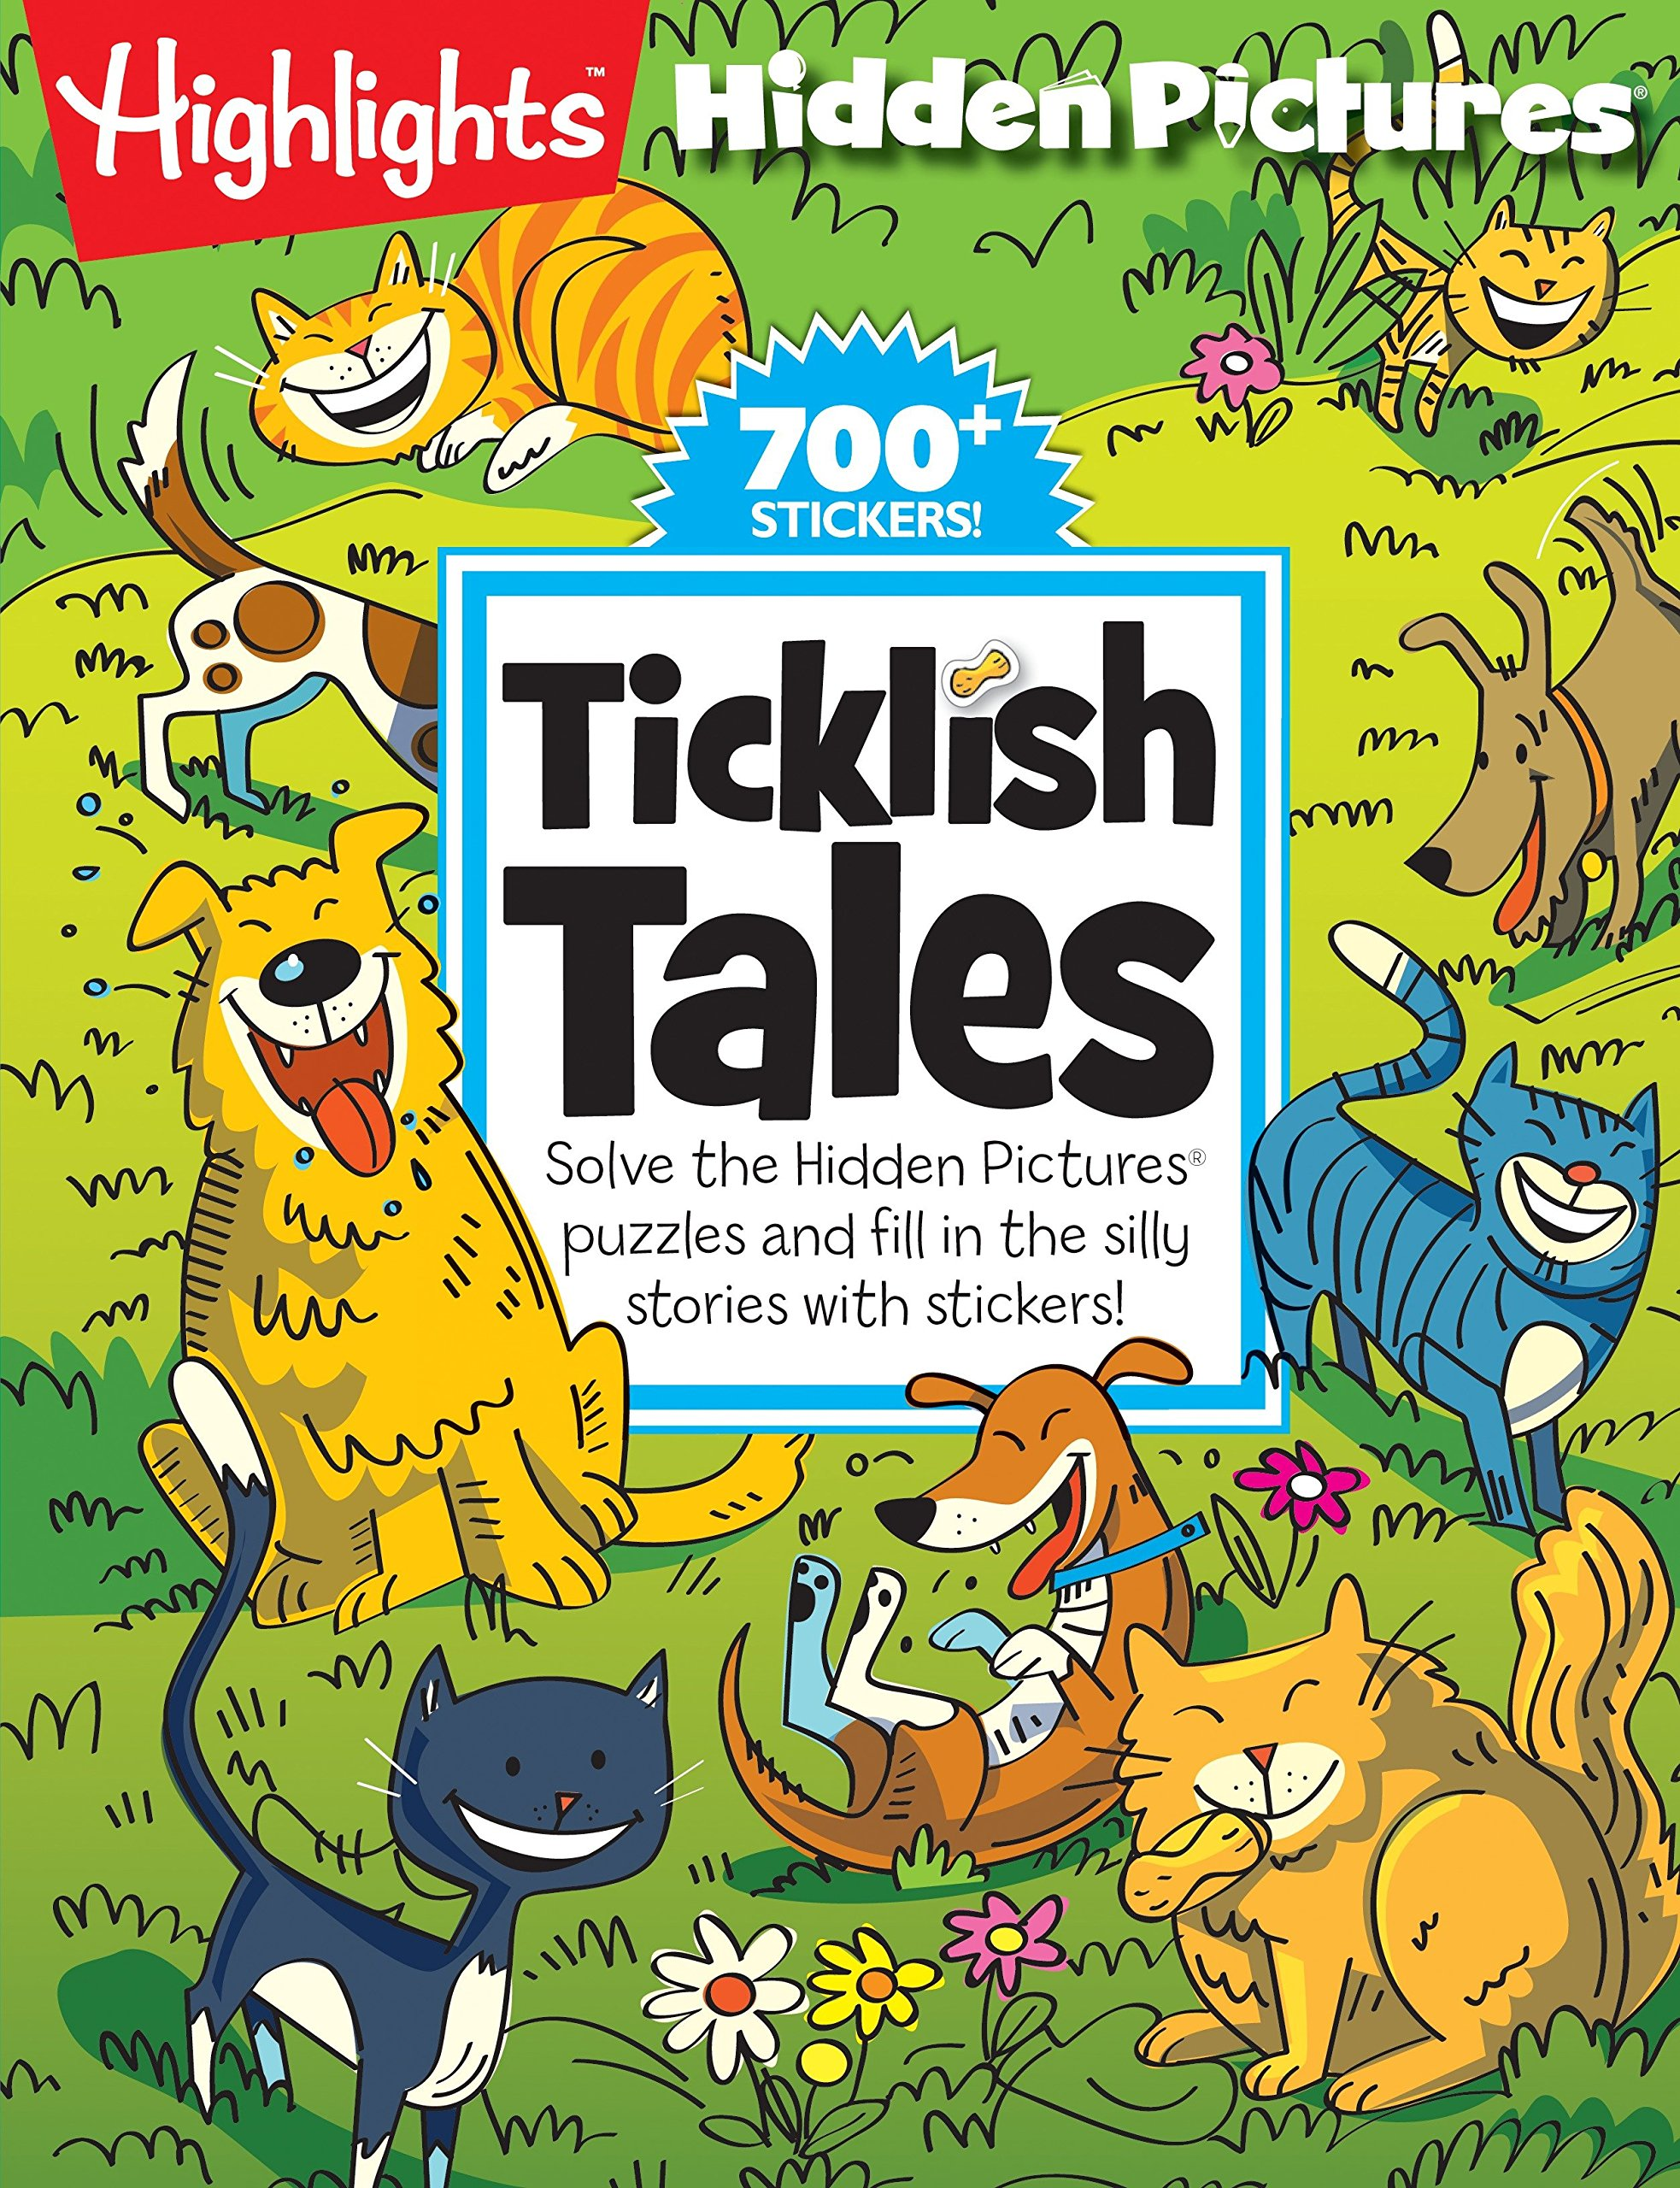 Read Online Ticklish Tales: Solve the Hidden Pictures® puzzles and fill in the silly stories with stickers! (Highlights™ Hidden Pictures® Silly Sticker Stories™) pdf epub